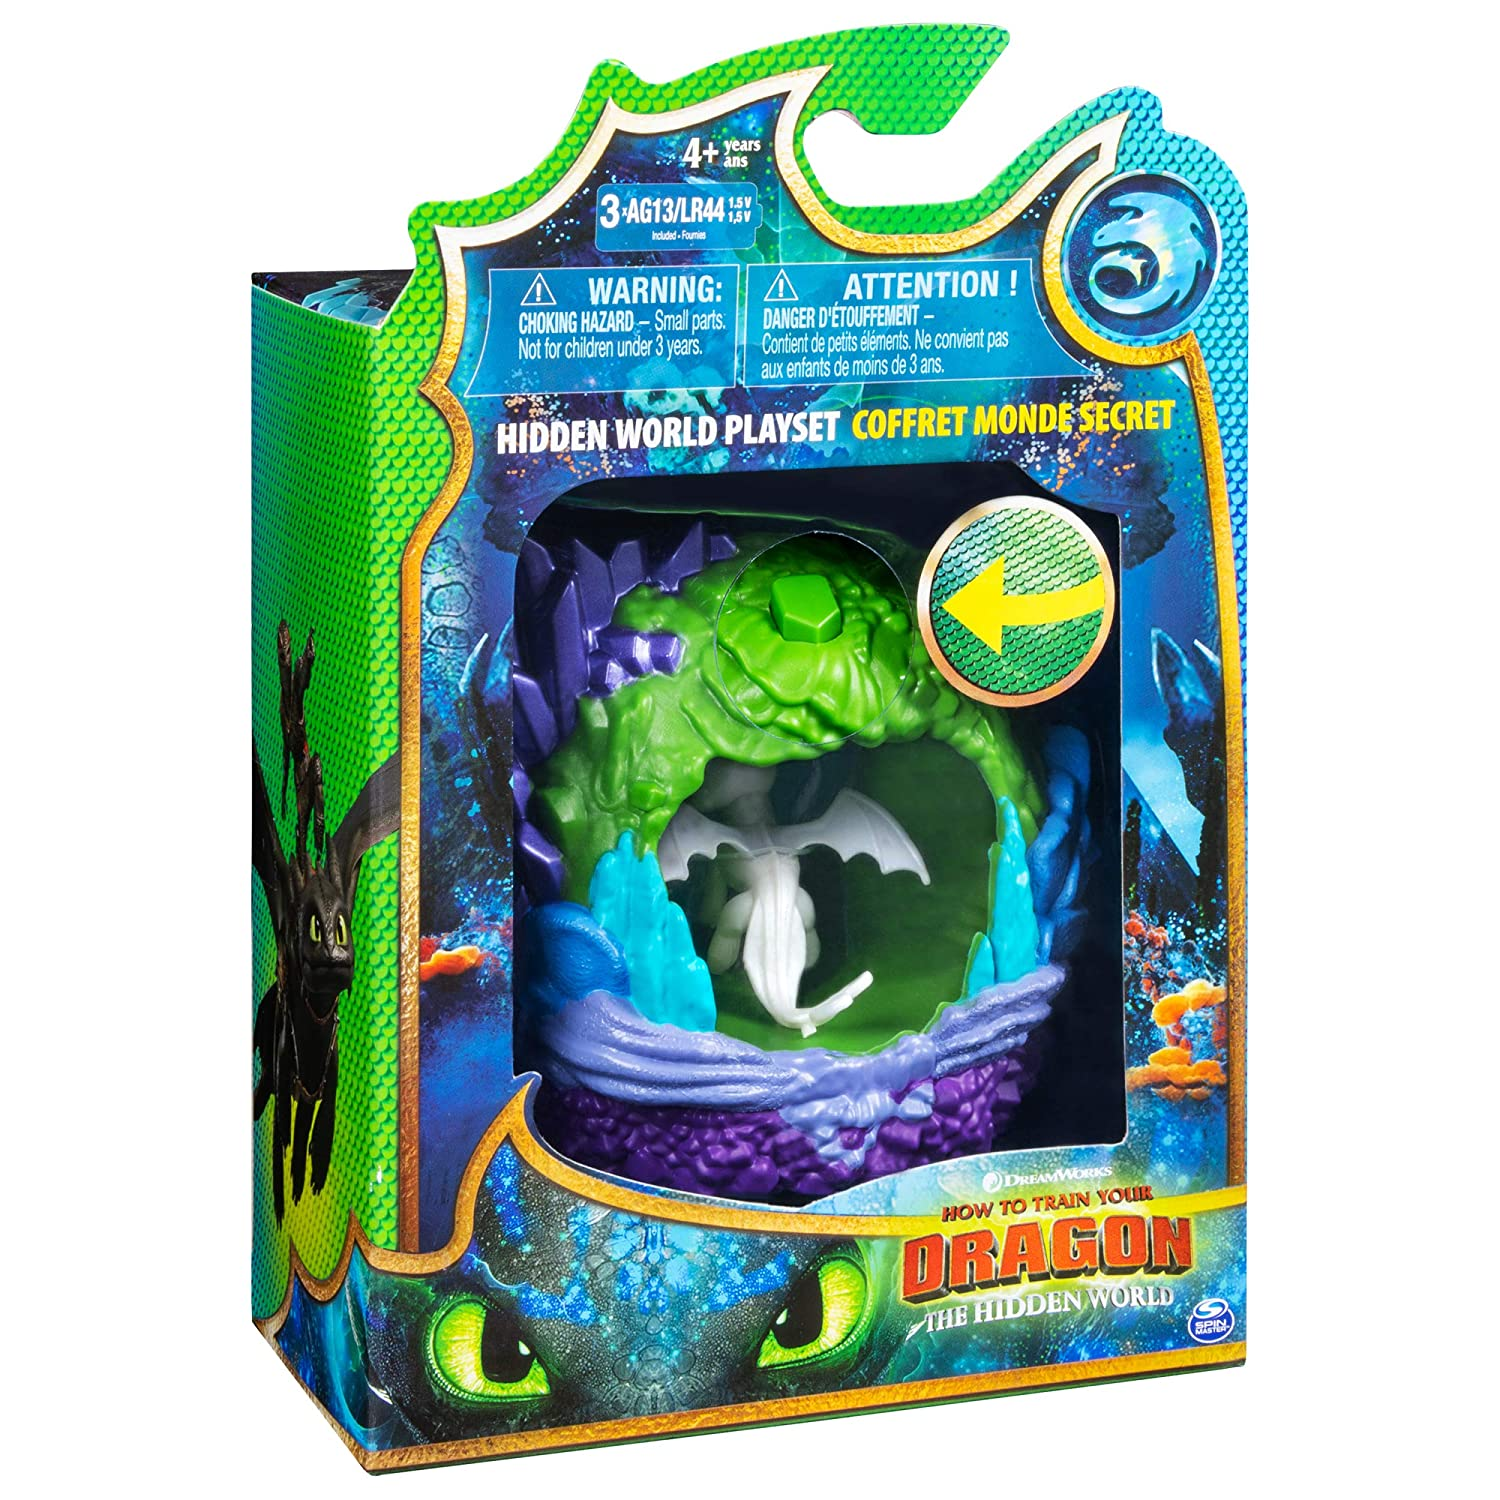 Dreamworks Dragons Hidden World Playset, Dragon Lair with Collectible  Lightfury Figure, for Kids Aged 4 and Up